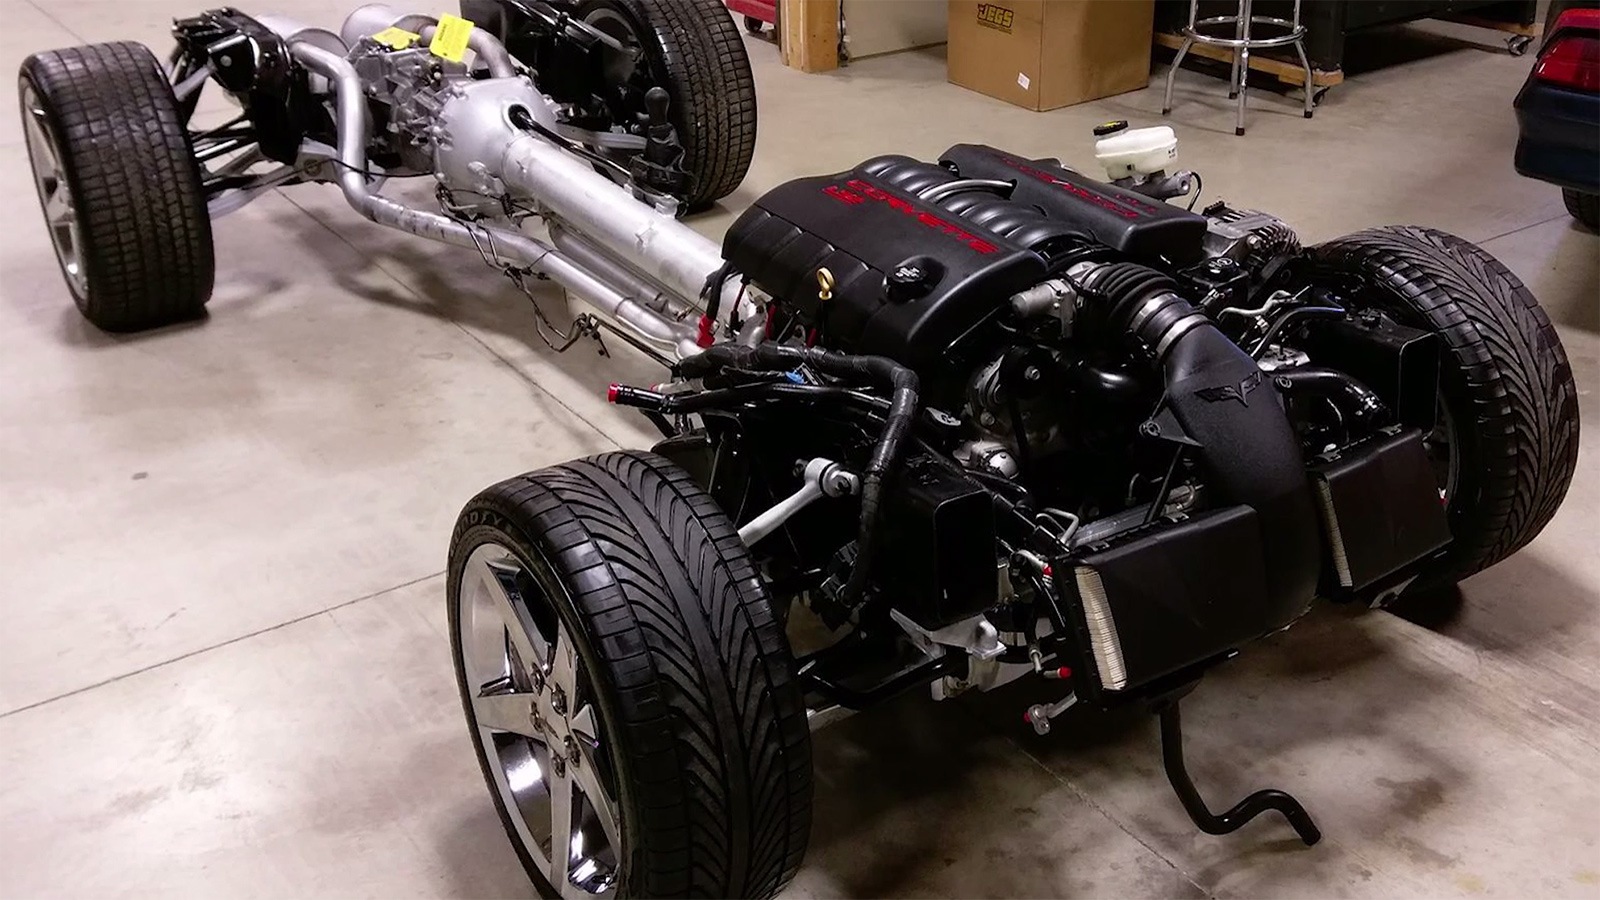 Cleveland Power And Performance >> 1973 Plymouth Duster on a C6 Corvette Chassis - engineswapdepot.com